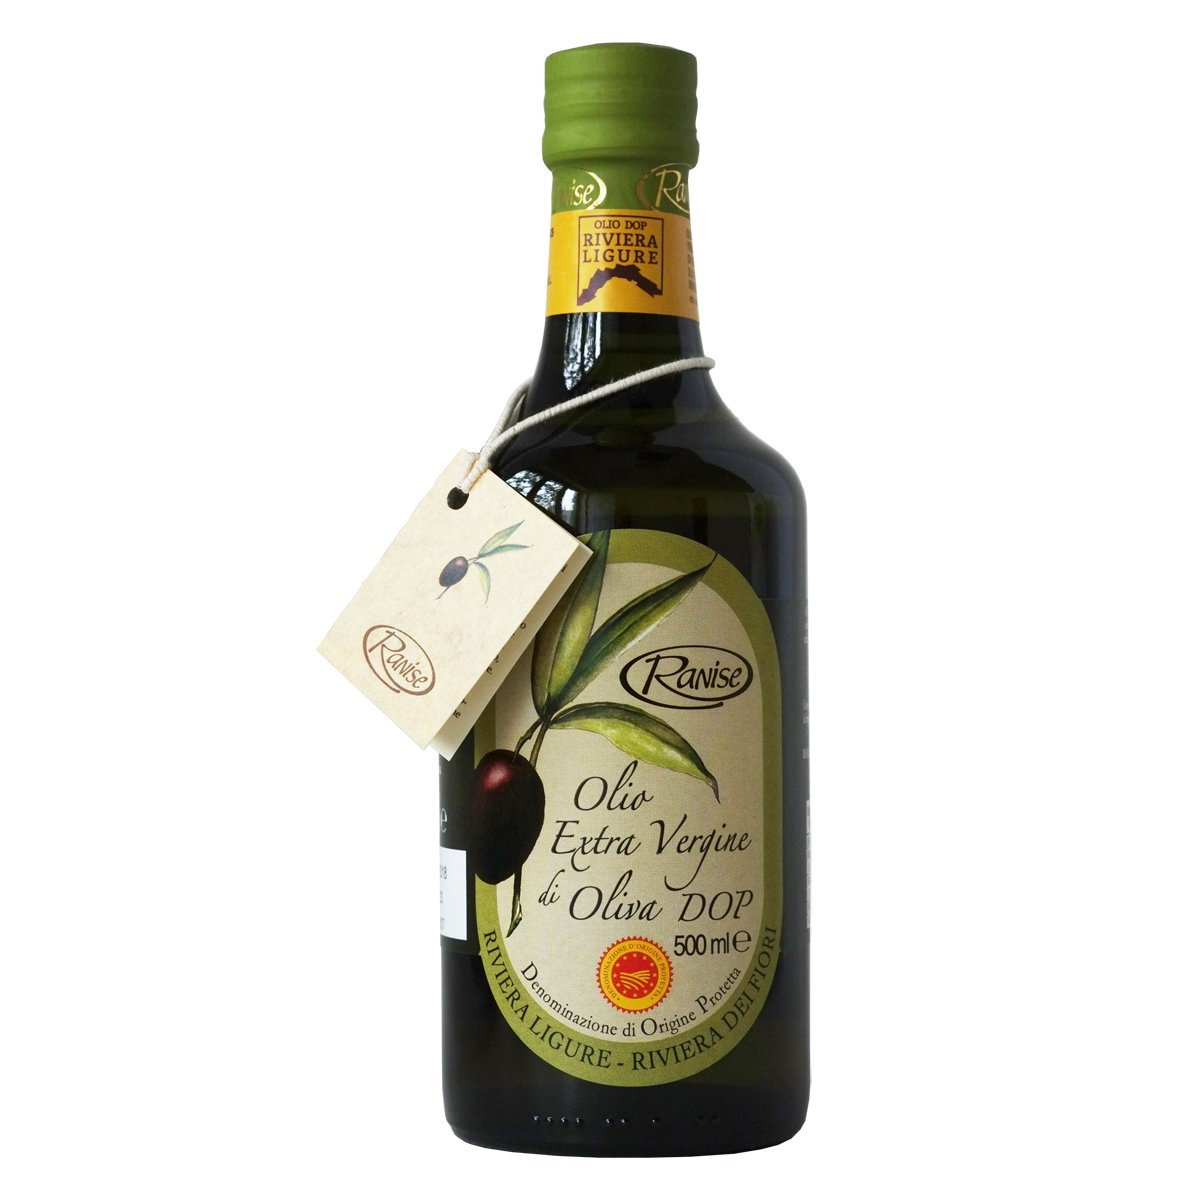 Ligurian Italian Extra Virgin Olive Oil DOP 16.9 fl oz - Pack of 2 by Ranise (Image #1)